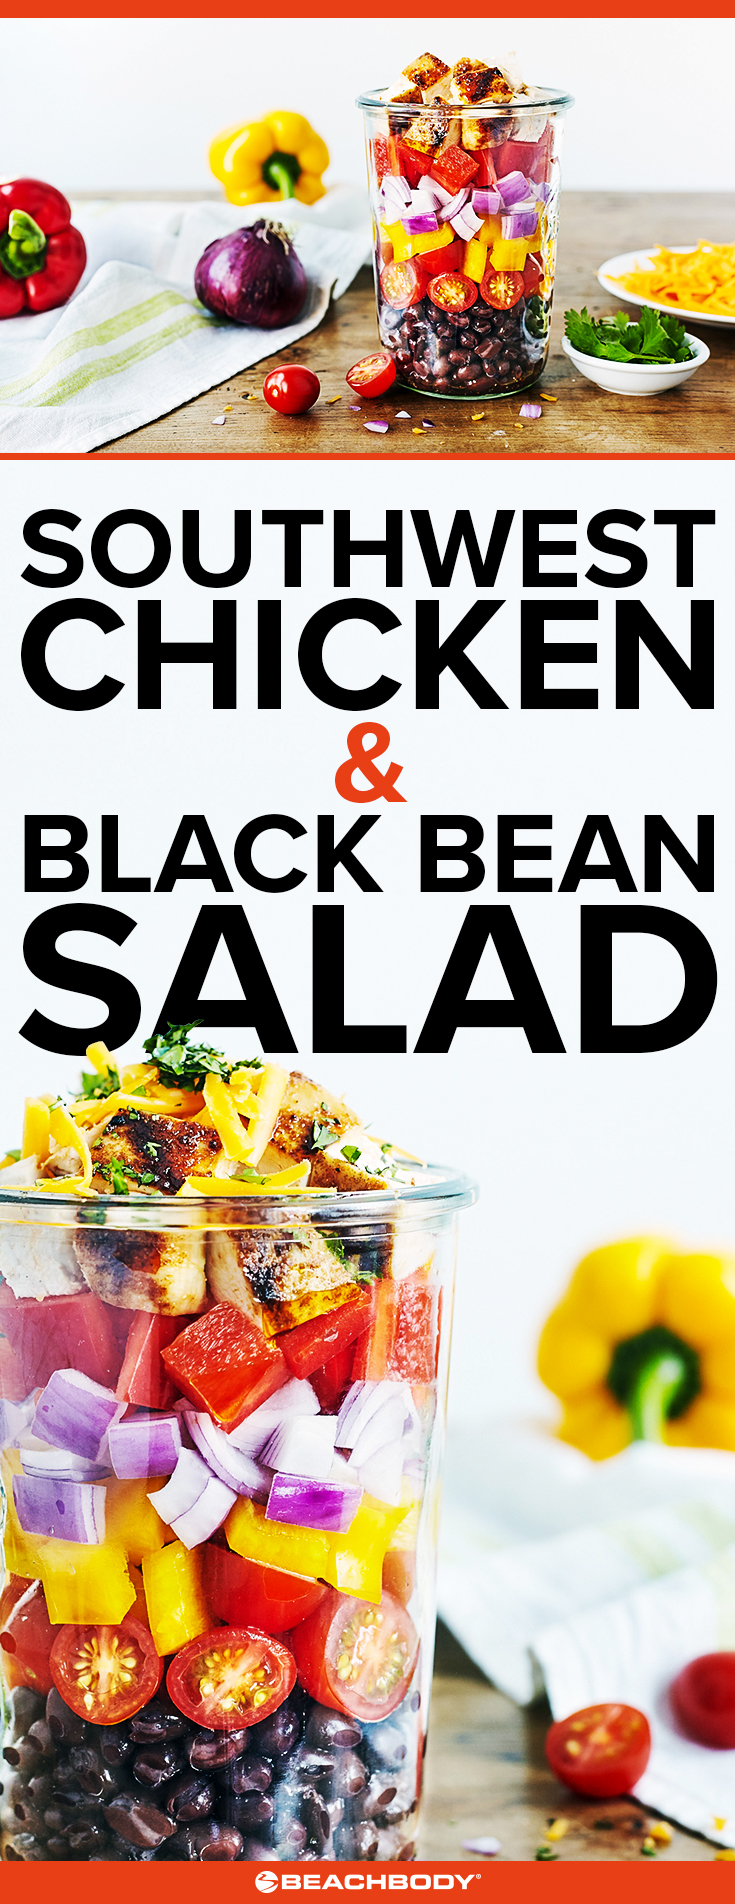 Southwest Chicken and Black Bean Salad Recipe, mason jar salad, salad recipe